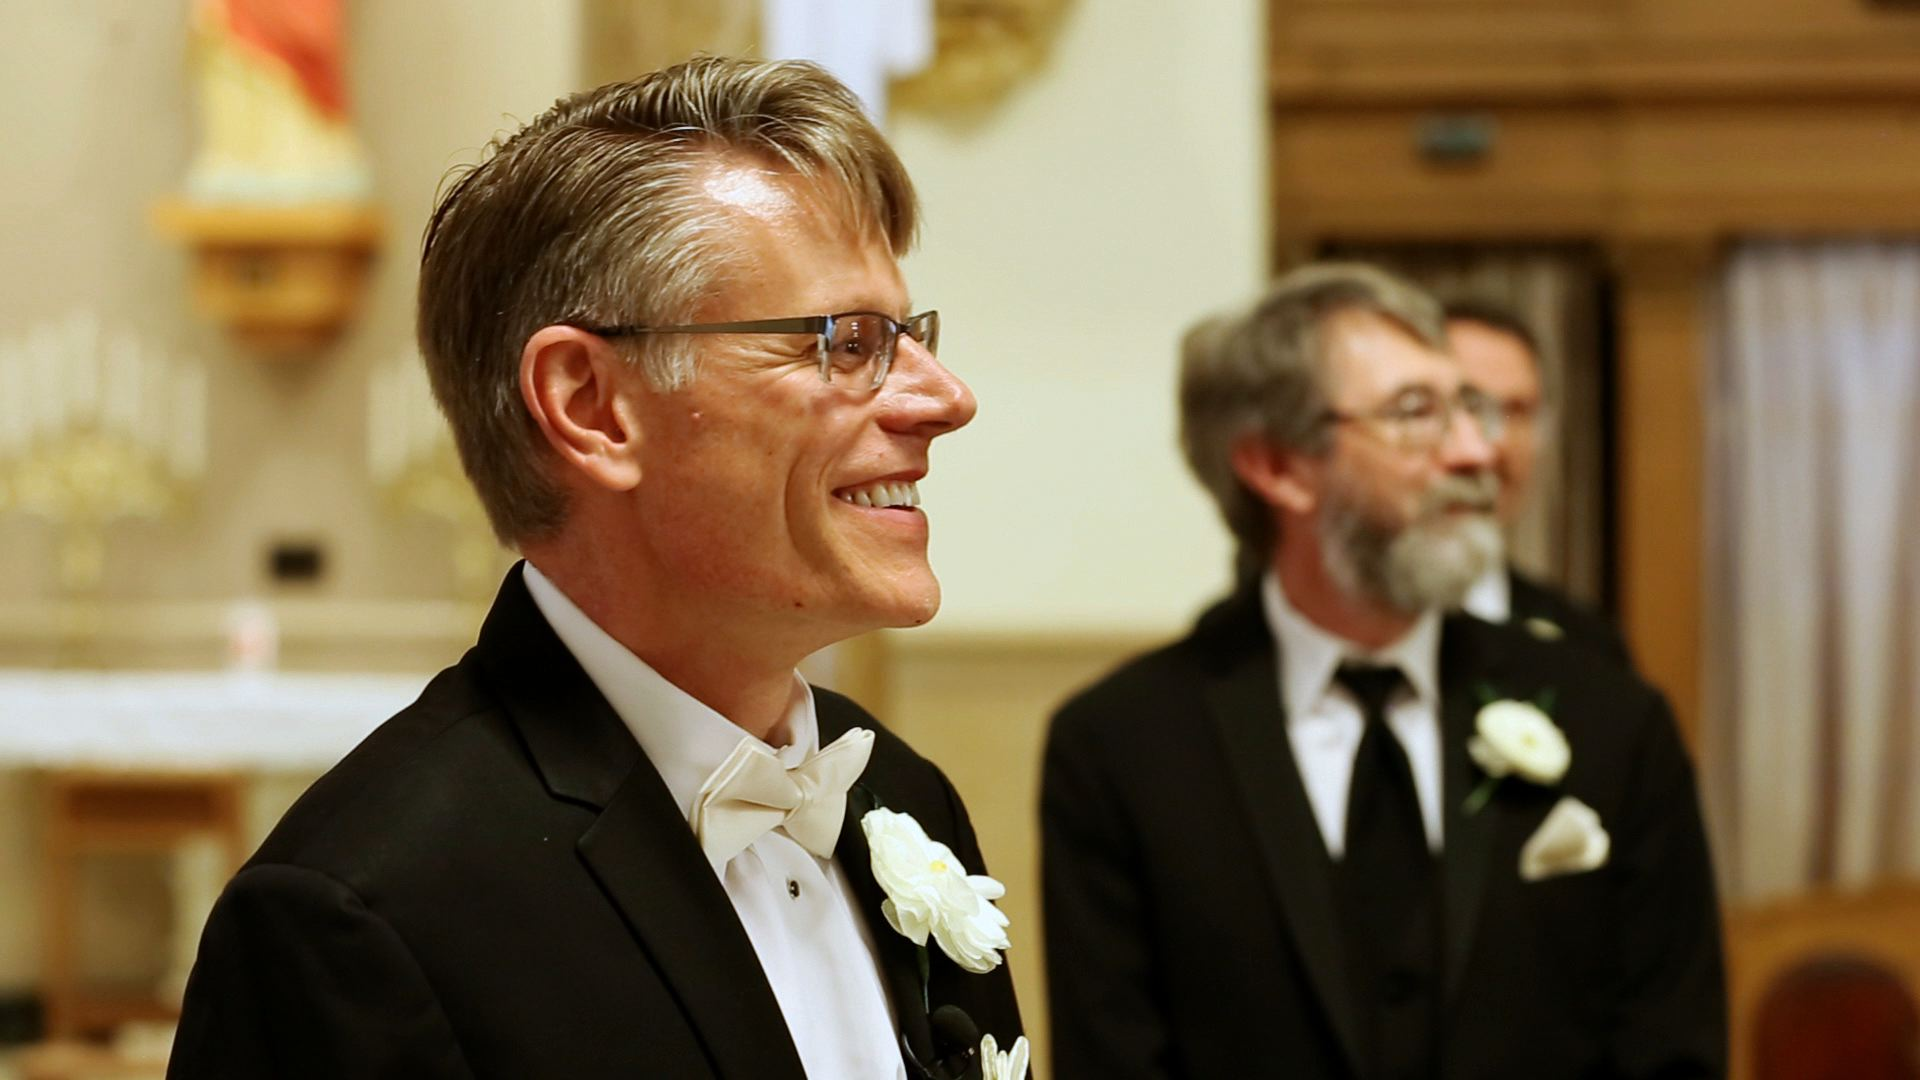 We love watching the groom's reaction as he sees the bride for the first time.